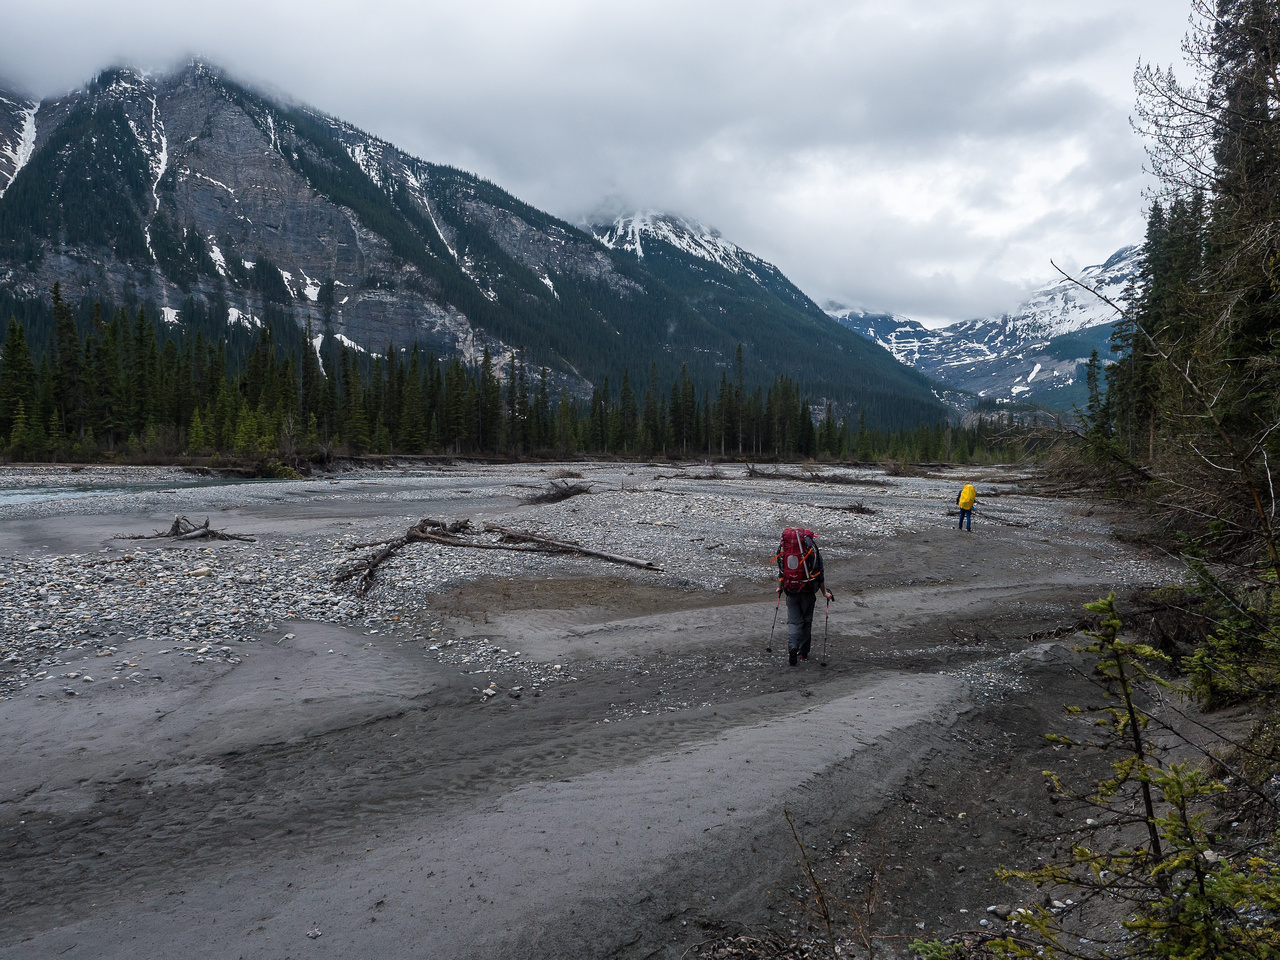 There were a few recently washed out sections of trail where we simply walked on the dry river flats rather than deal with heinous bushwhacking.